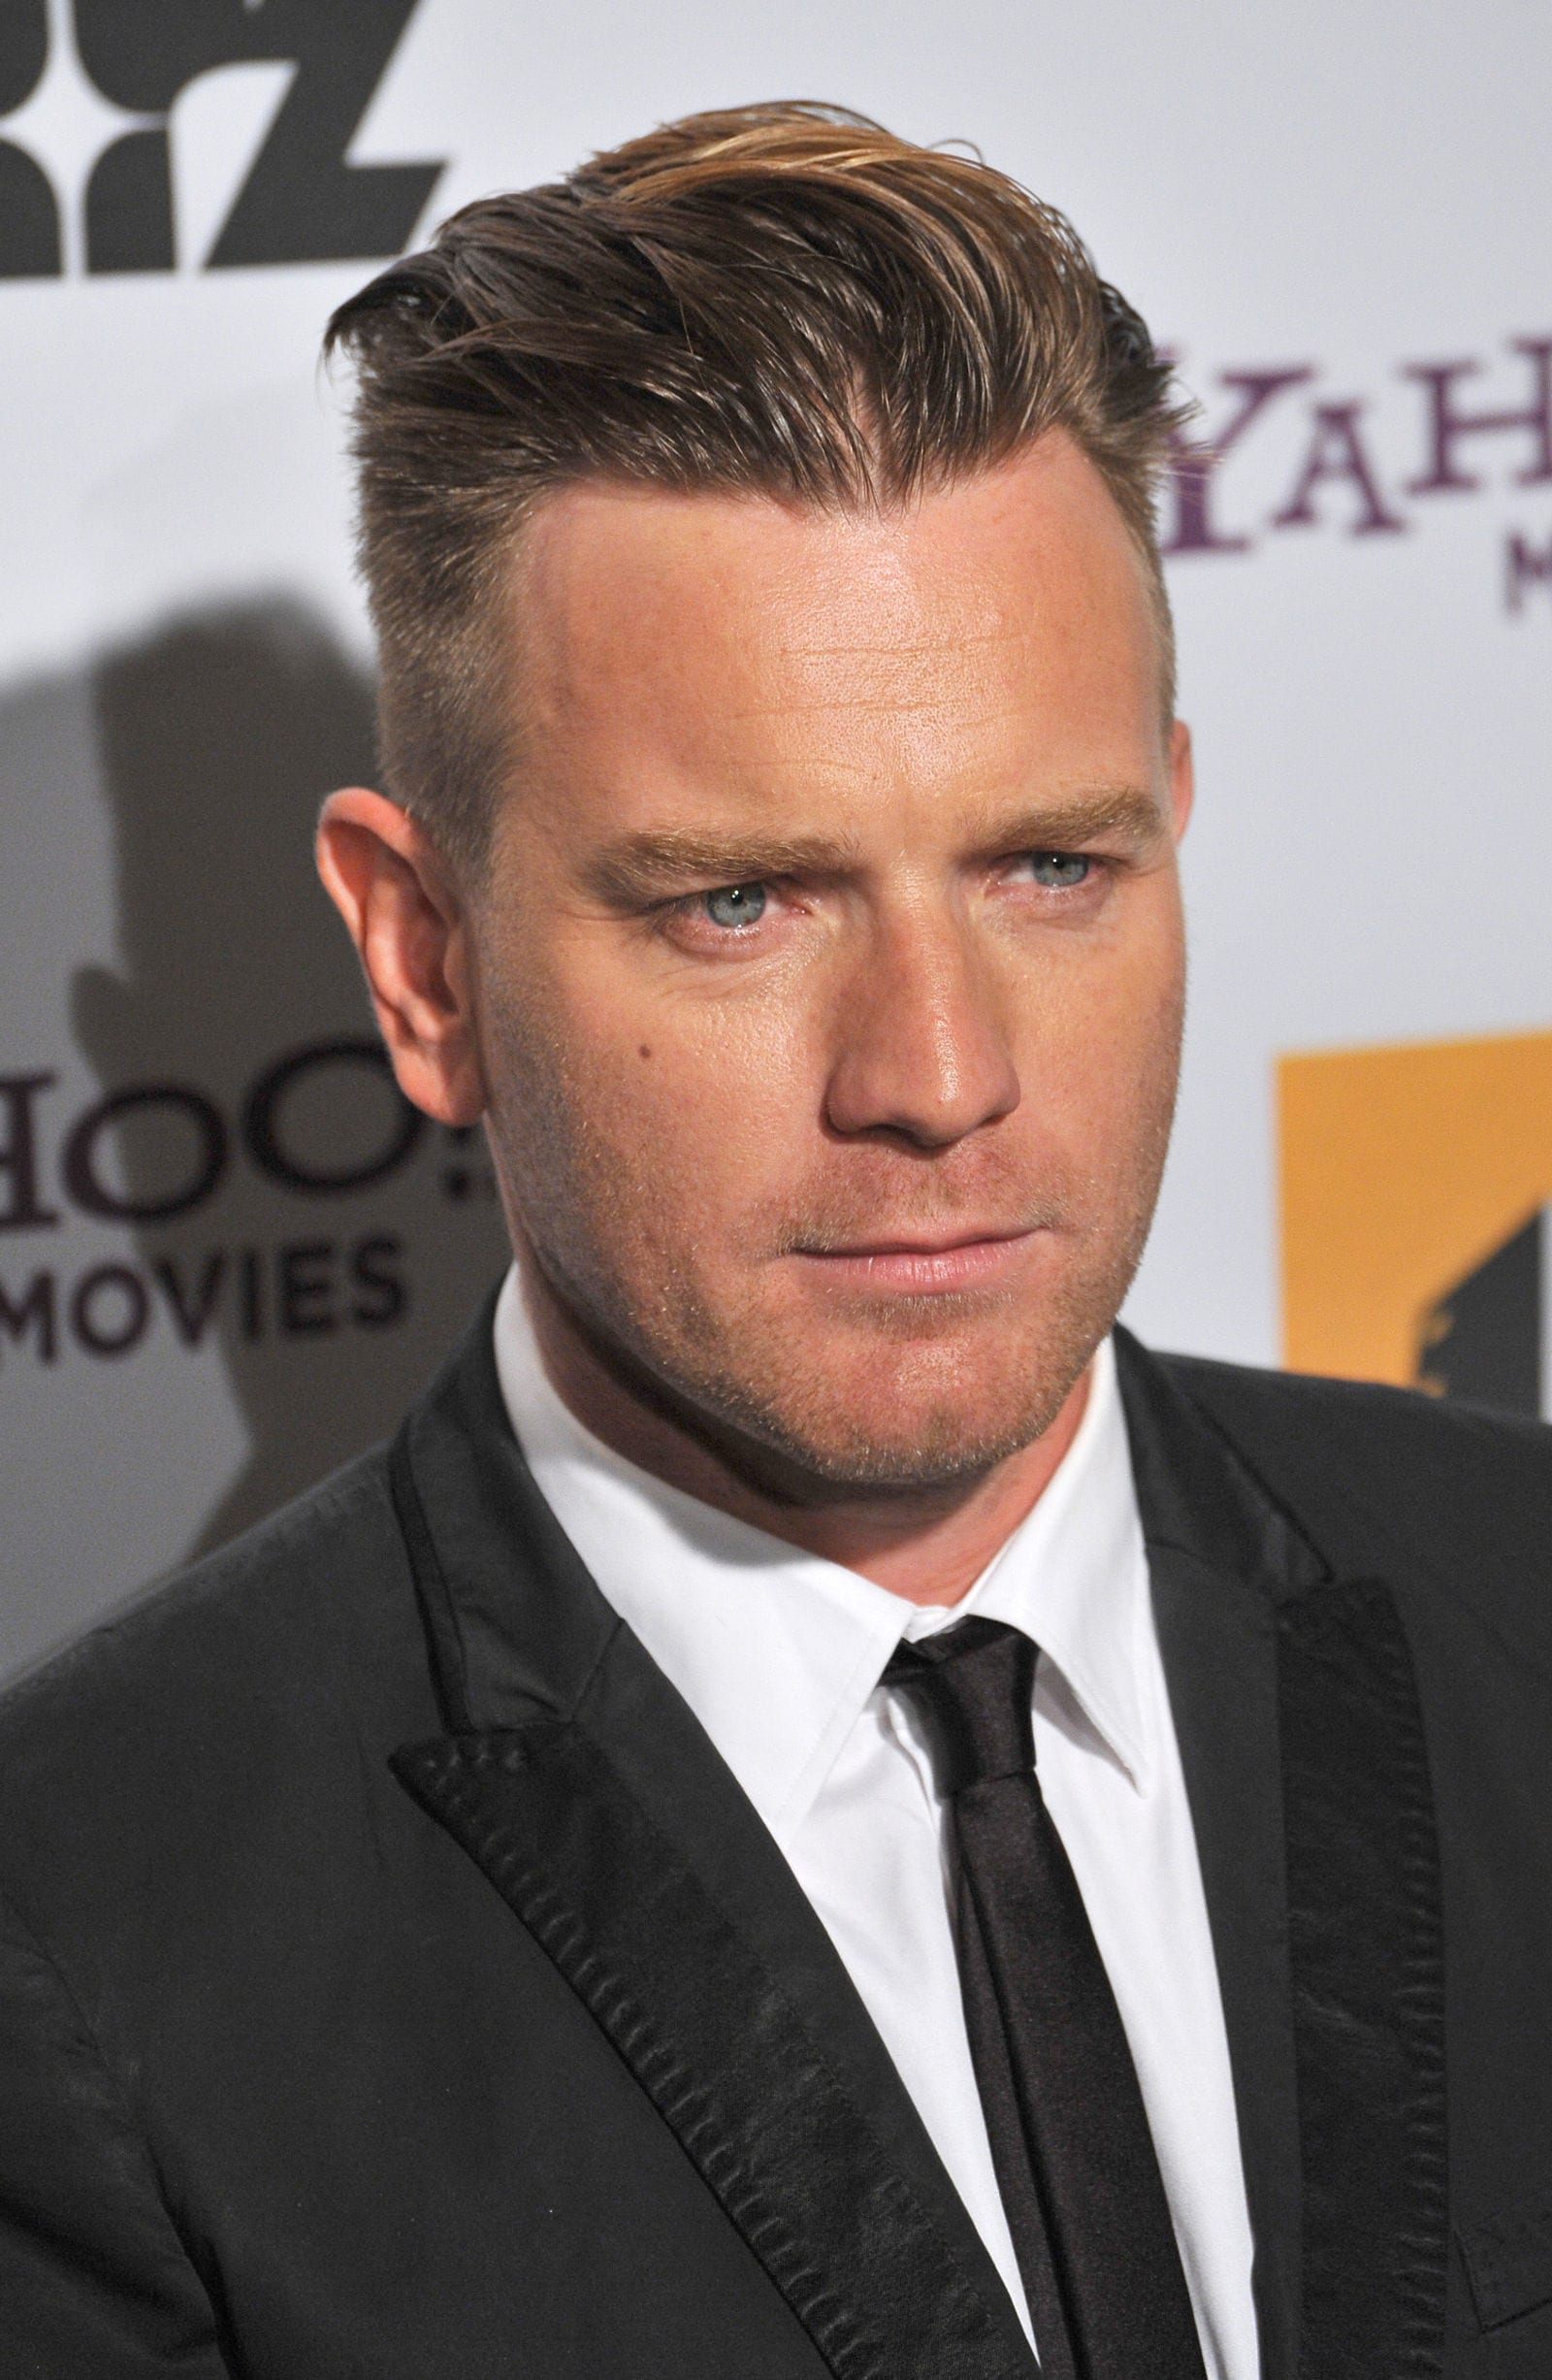 Ewan McGregor slicked back undercut by Jaguar PS